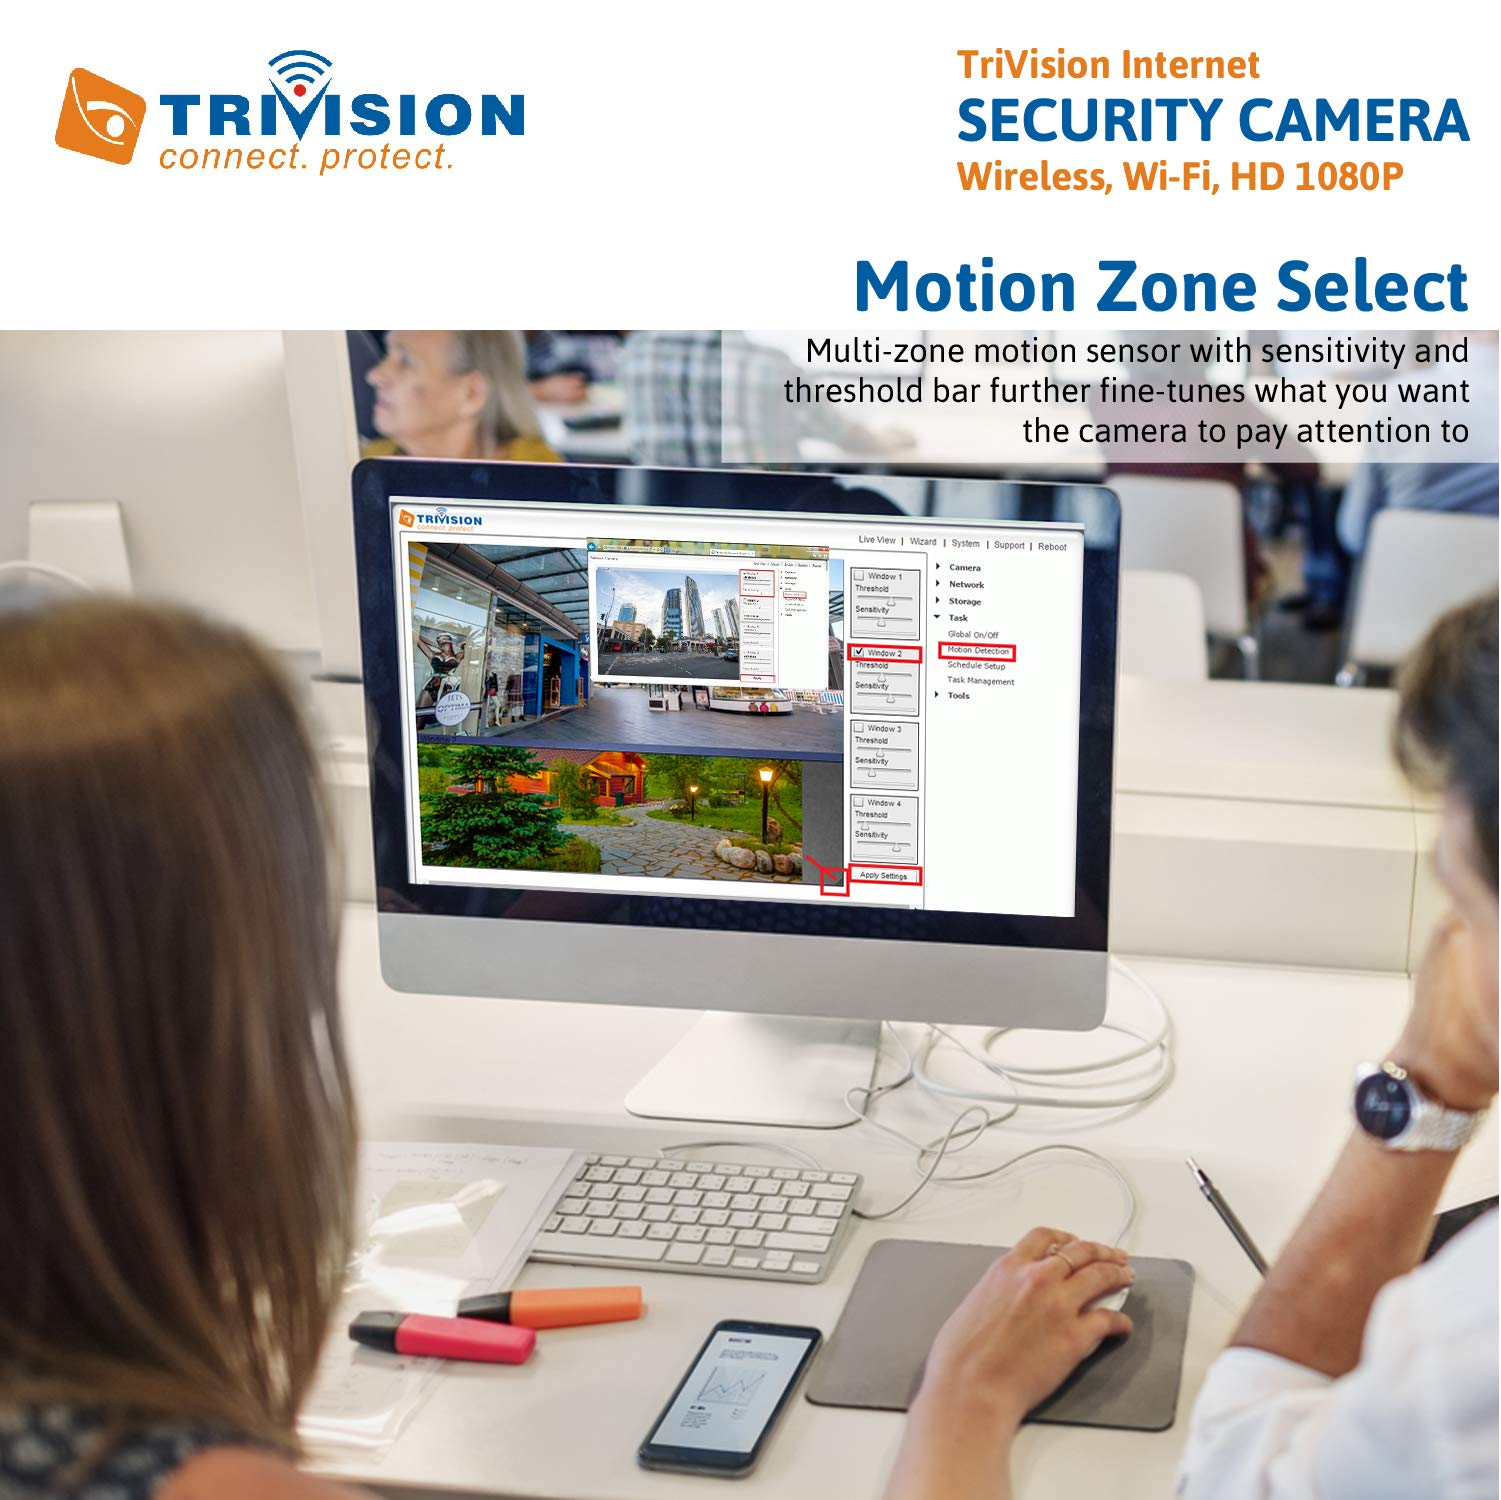 TriVision 1080P HD Outdoor Security Camera POE, WiFi, Superior Low Light Performance, Long Range Motion Sensor, Wide Angle Alarm Recording with SD Card, FTP, Google Drive, Dropbox